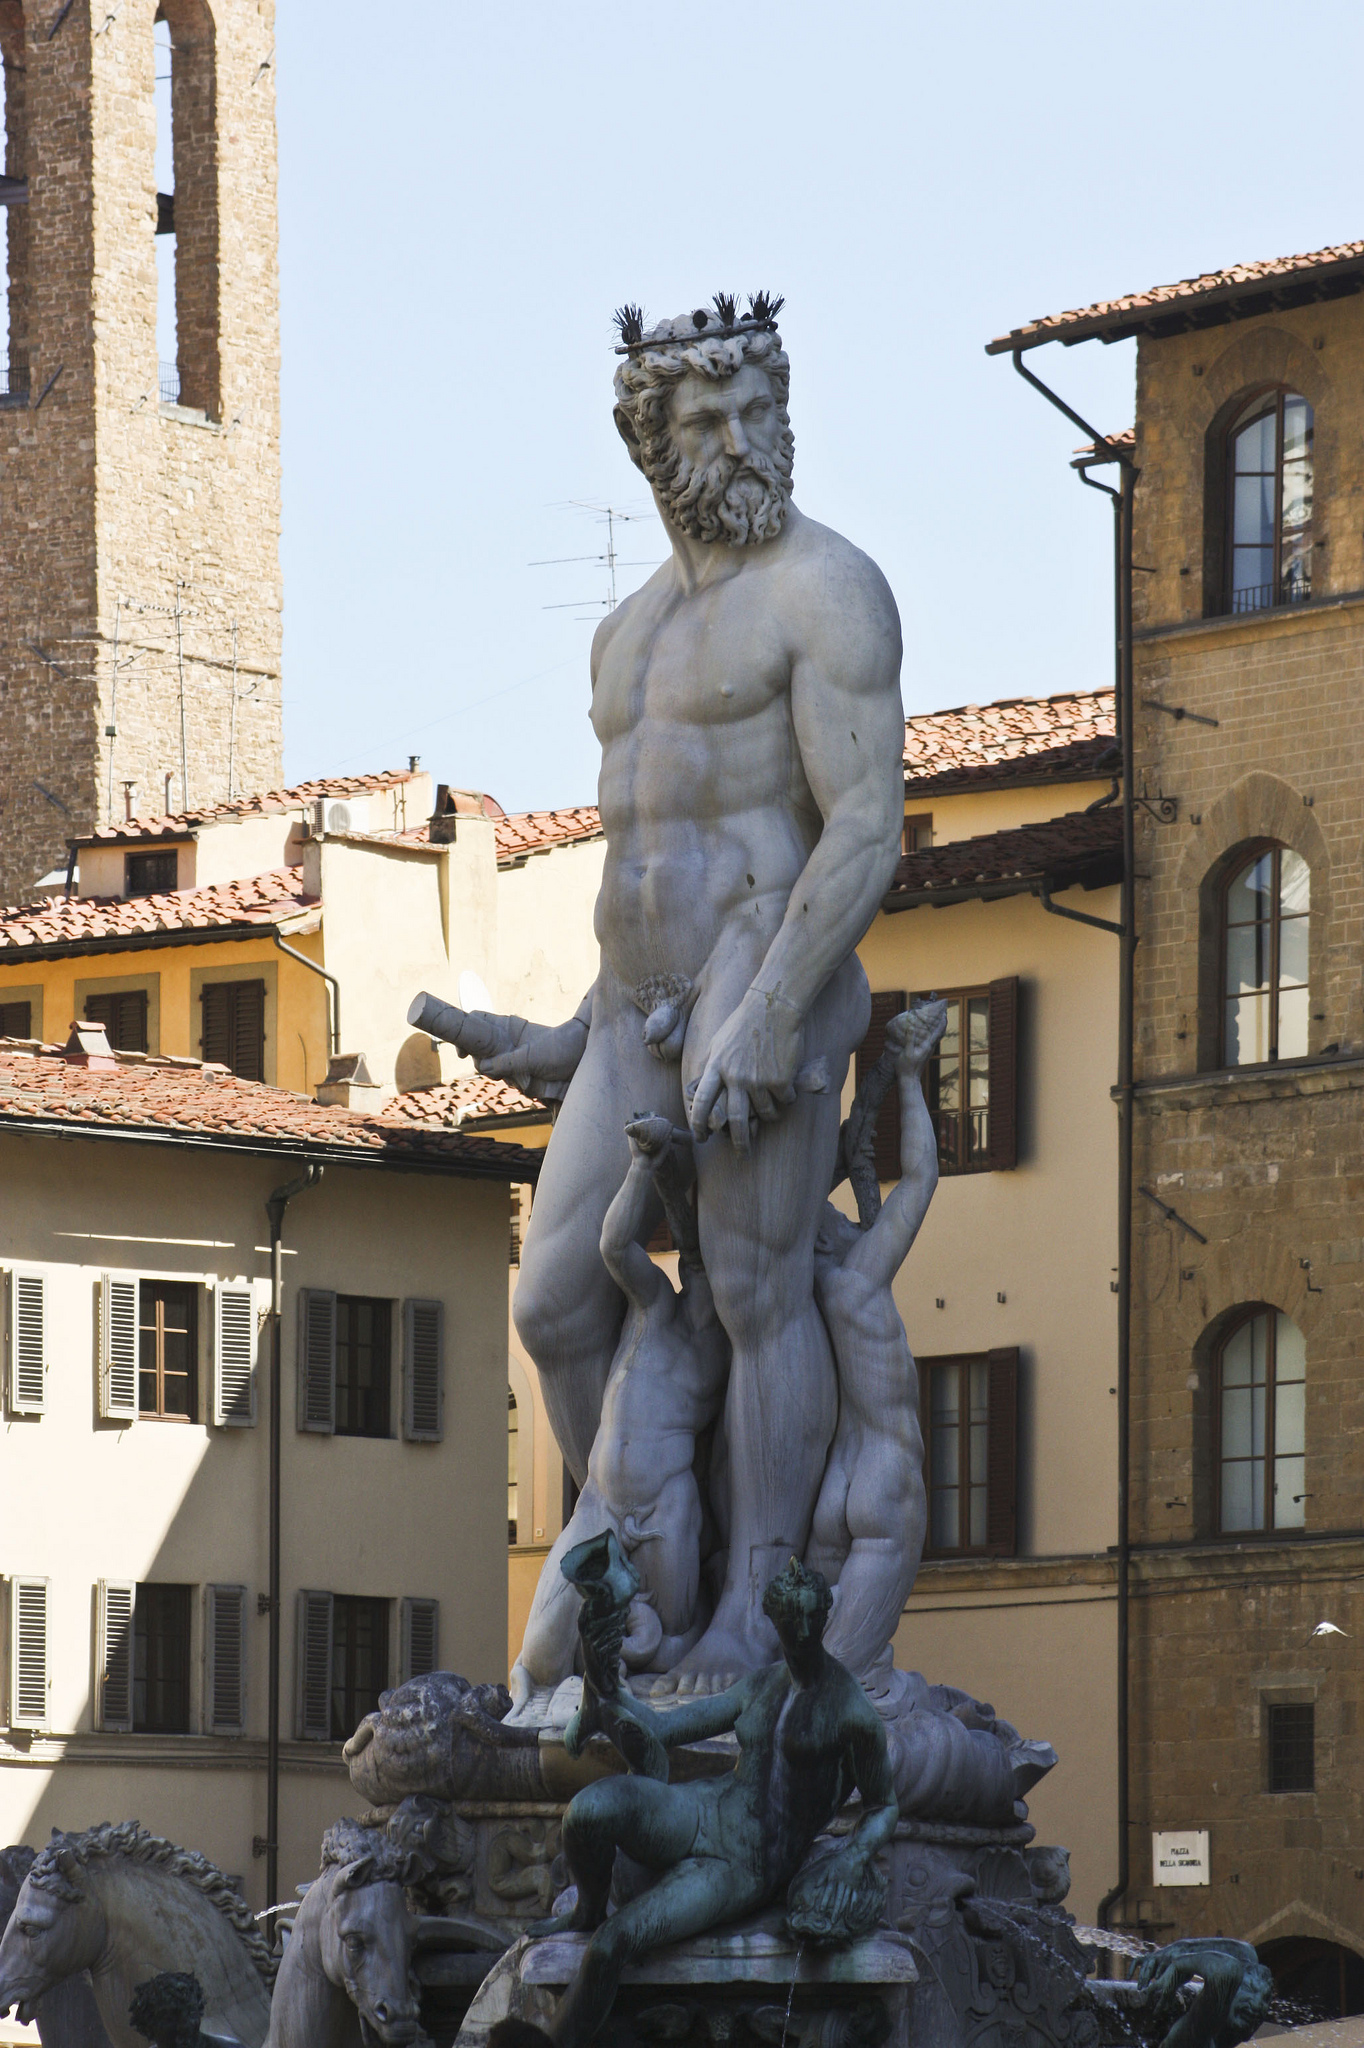 Seeing fine statues in Florence is on the European bucket list of many people ... photo by CC user ashleyhexum66 on Flickr